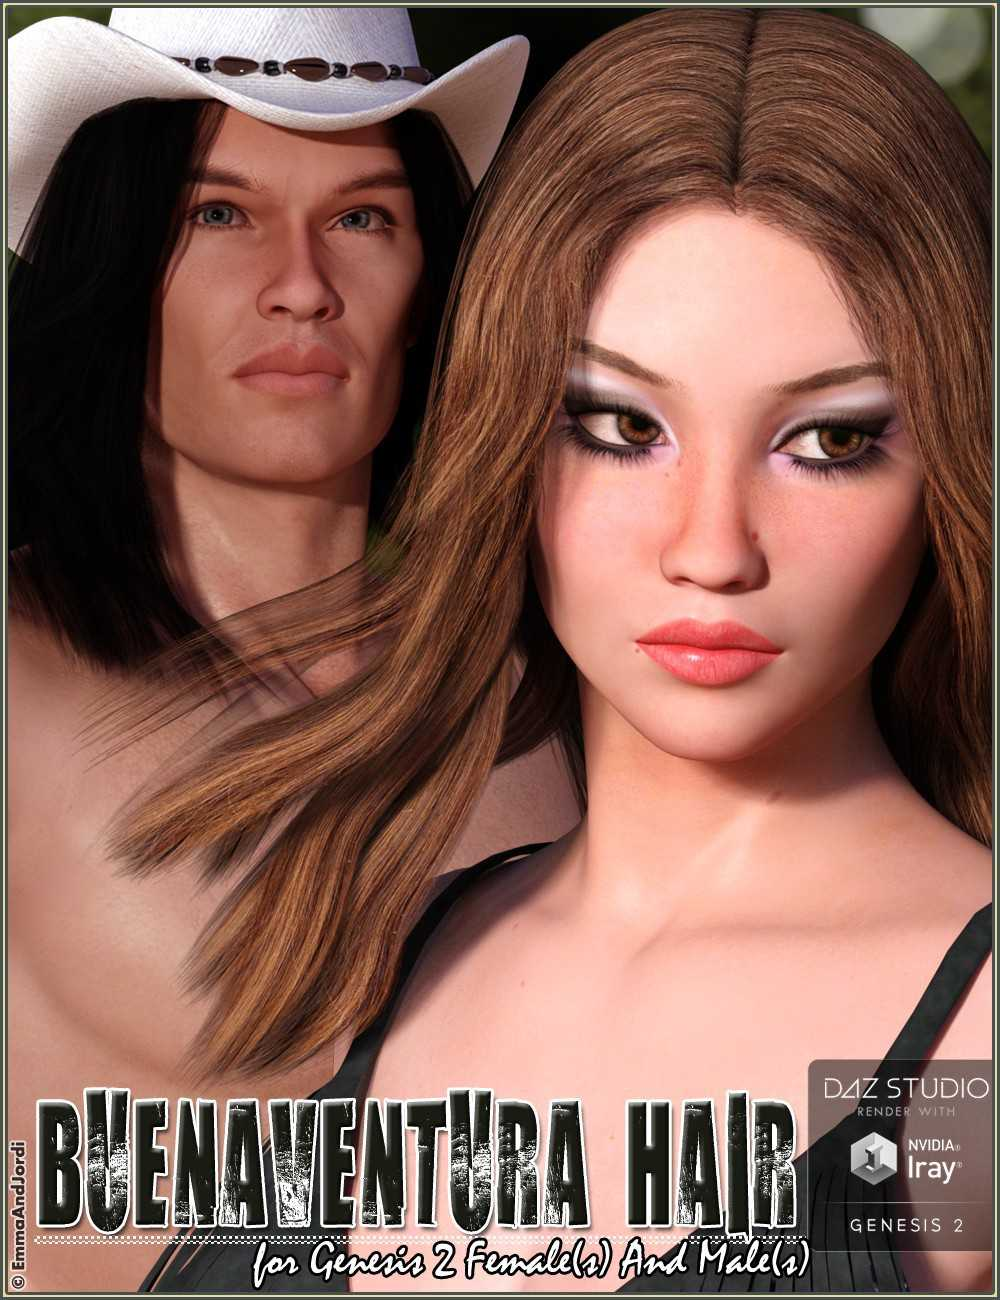 Buenaventura Hair For Genesis 2 Female(s) and Male(s)